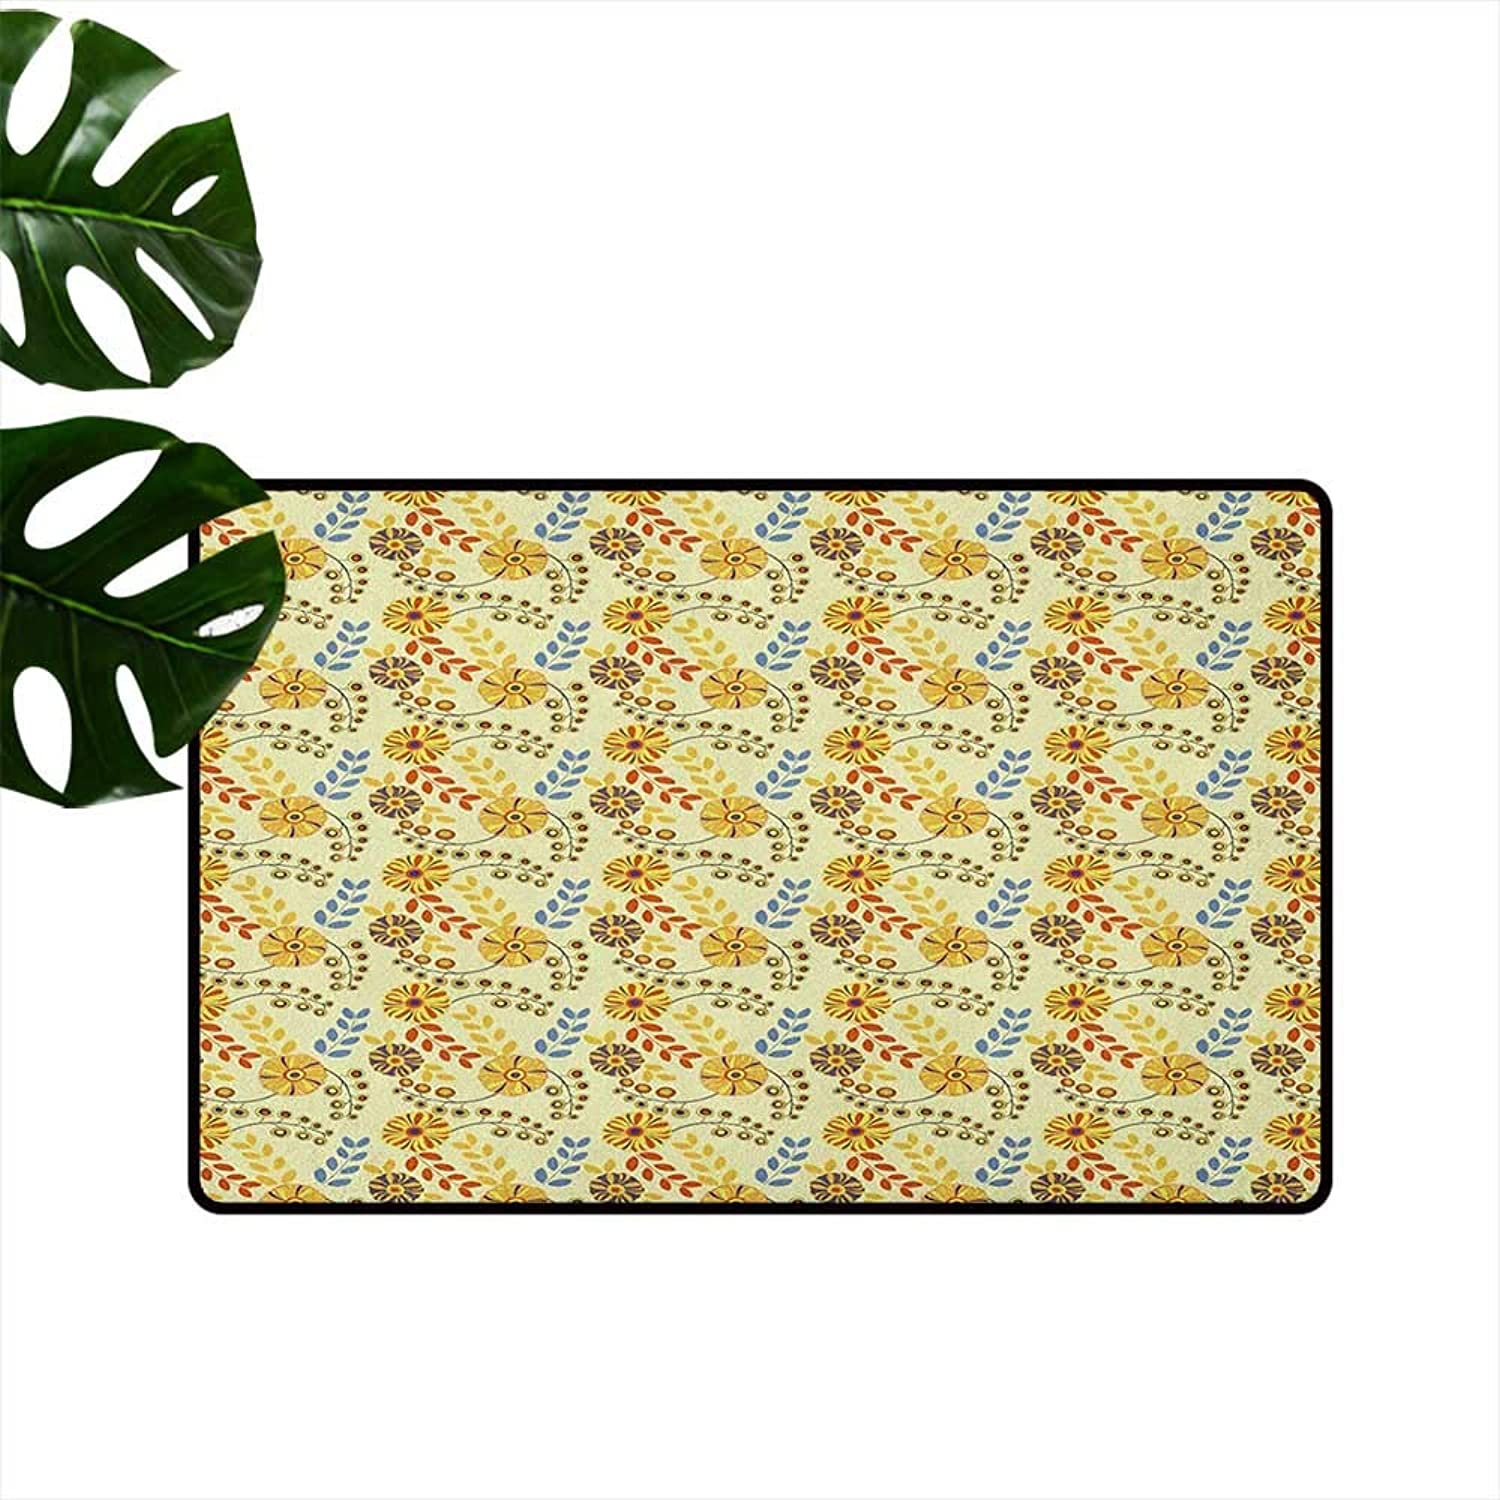 Yellow Entrance Door mat Old Fashioned Abstract Flowers Nostalgia Vintage Design Gardening Plants Foliage Hard and wear Resistant W35 x L59 Multicolor